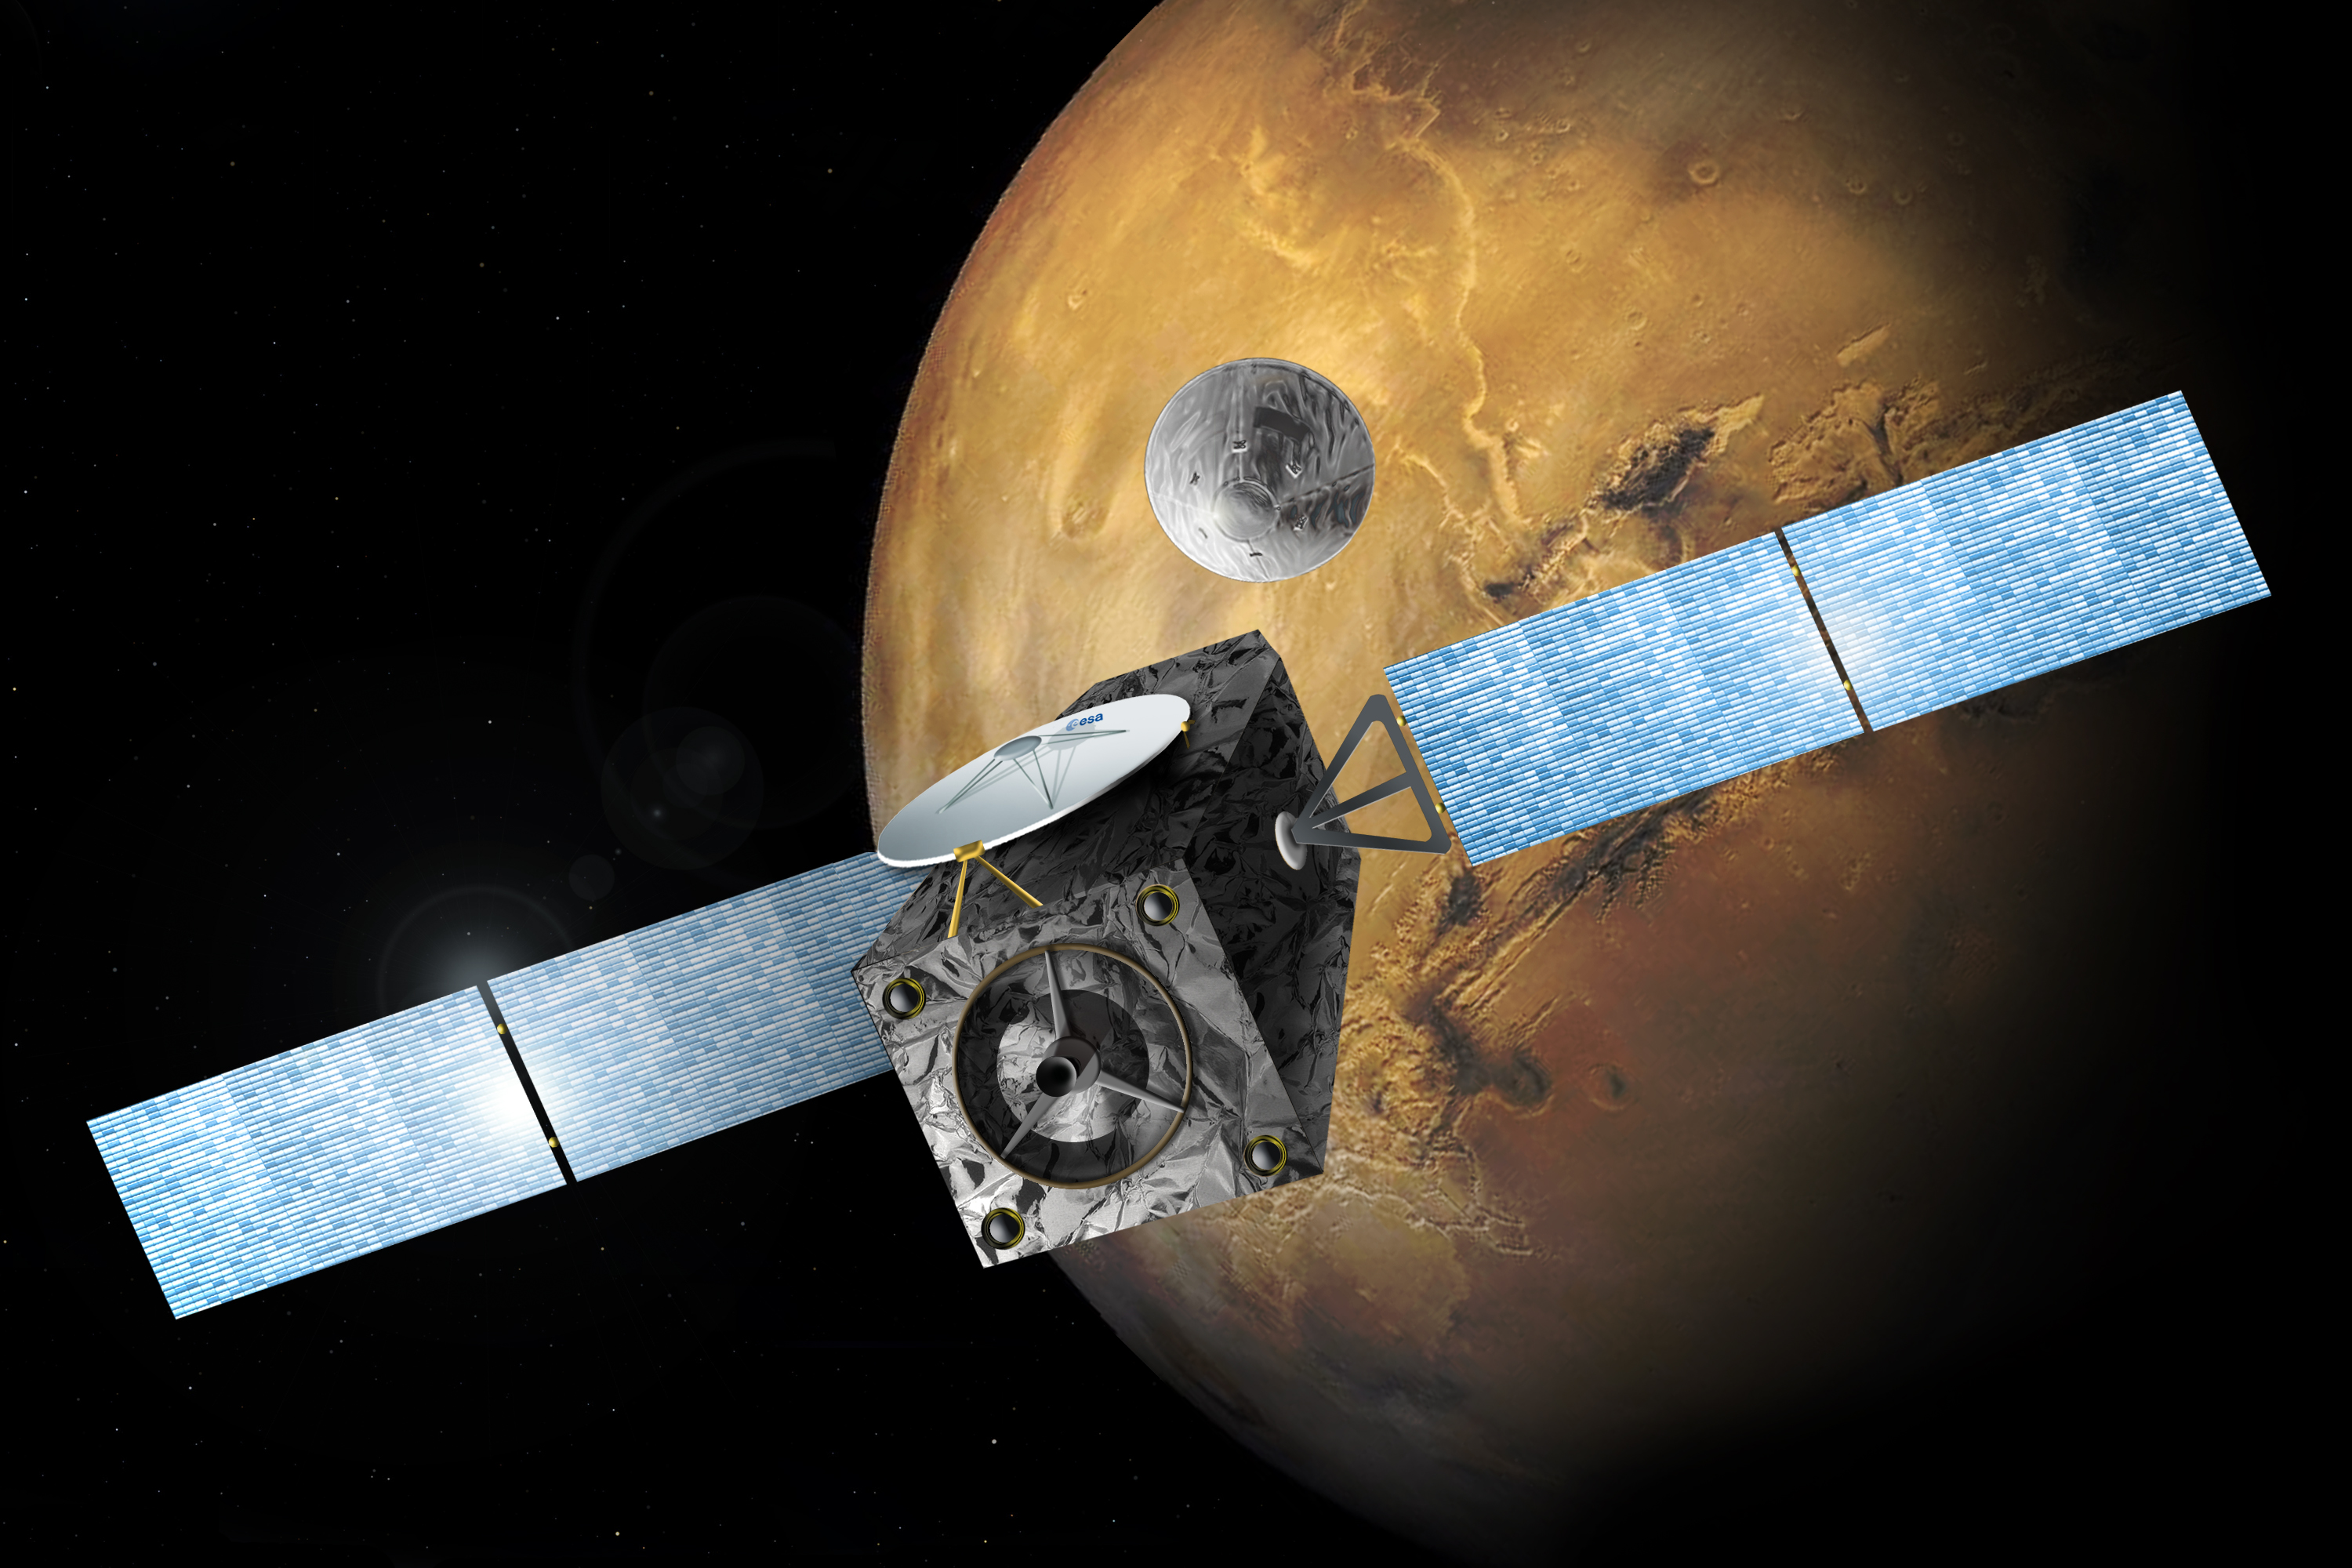 With ExoMars, Europe and Russia Aim to Kickstart Mars Exploration